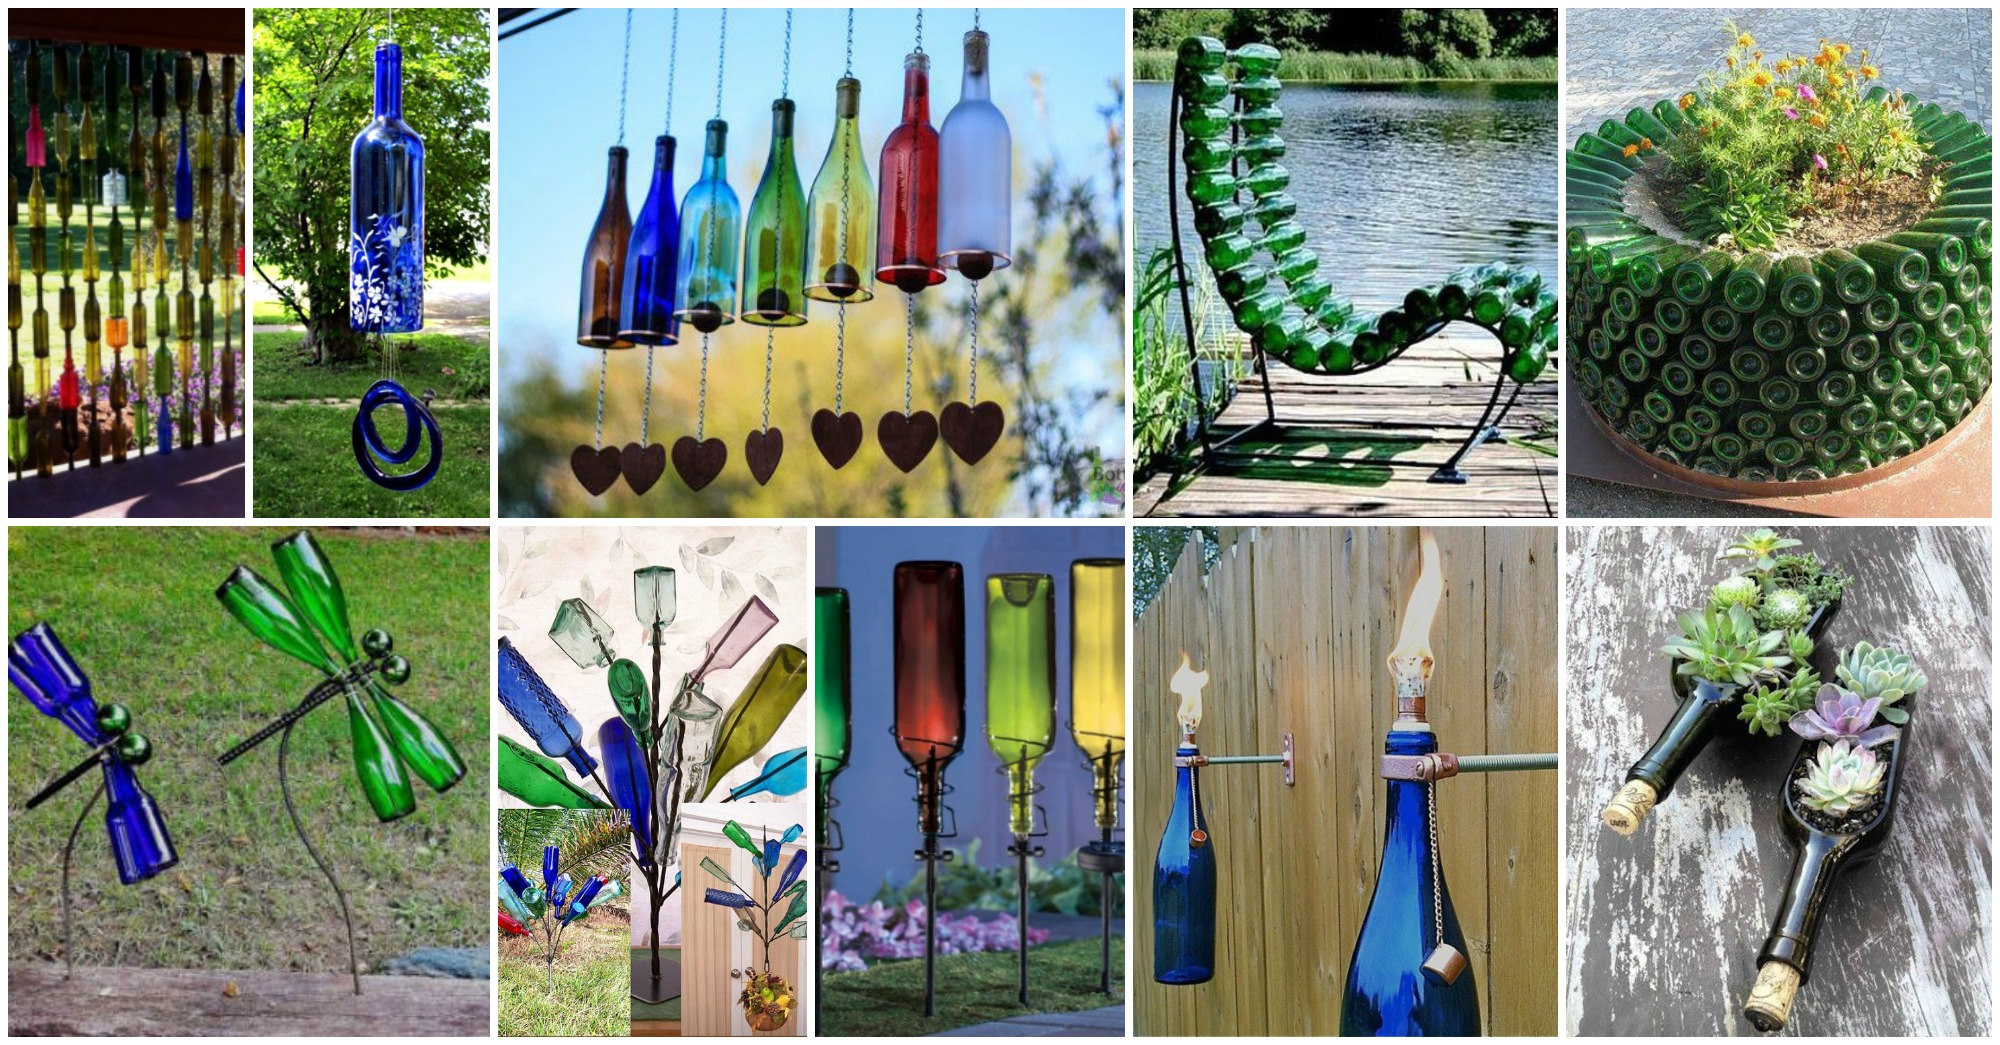 12 diy glass bottles garden decor Diy home design ideas pictures landscaping